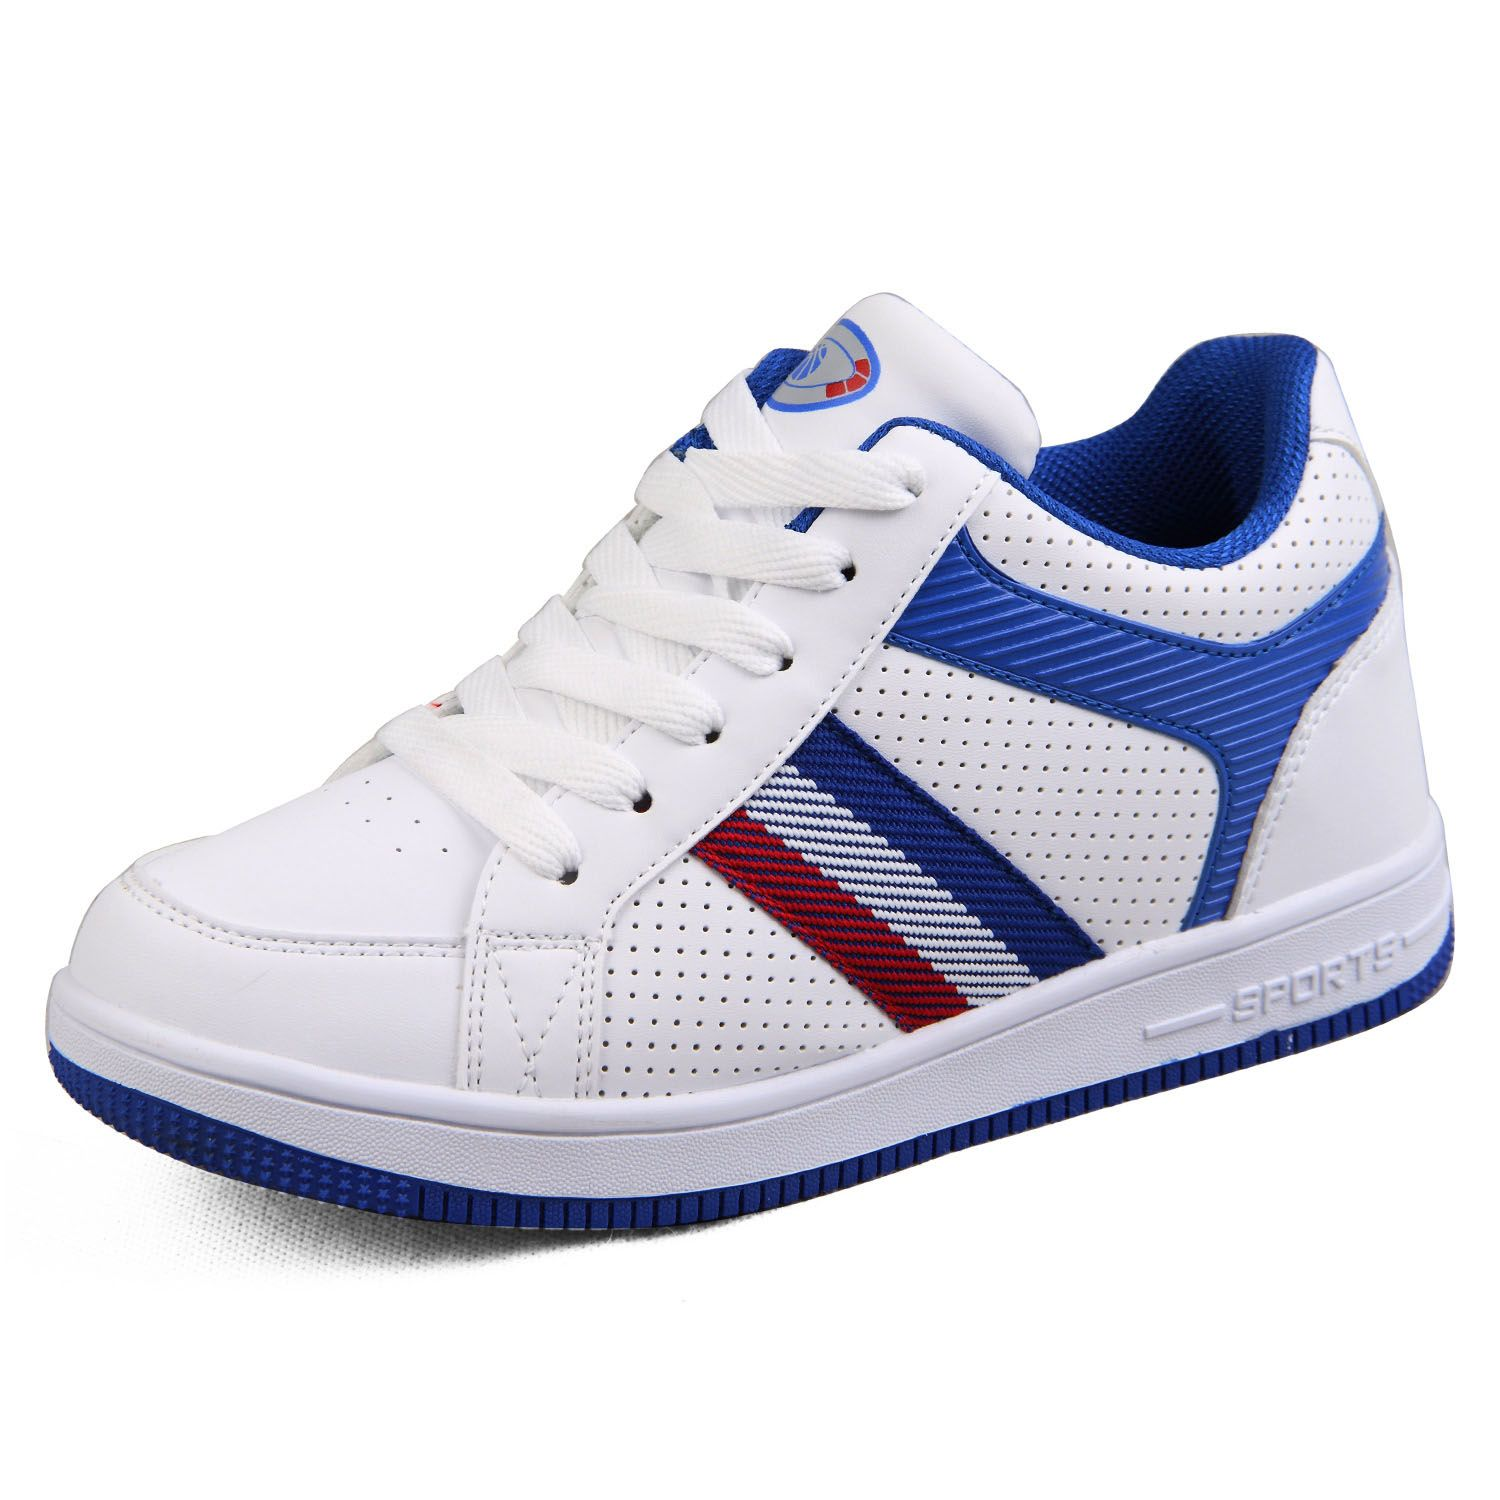 White&Blue height increase shoes for men / with the SKU:MENGOG_1389 - 2014 height increasing…